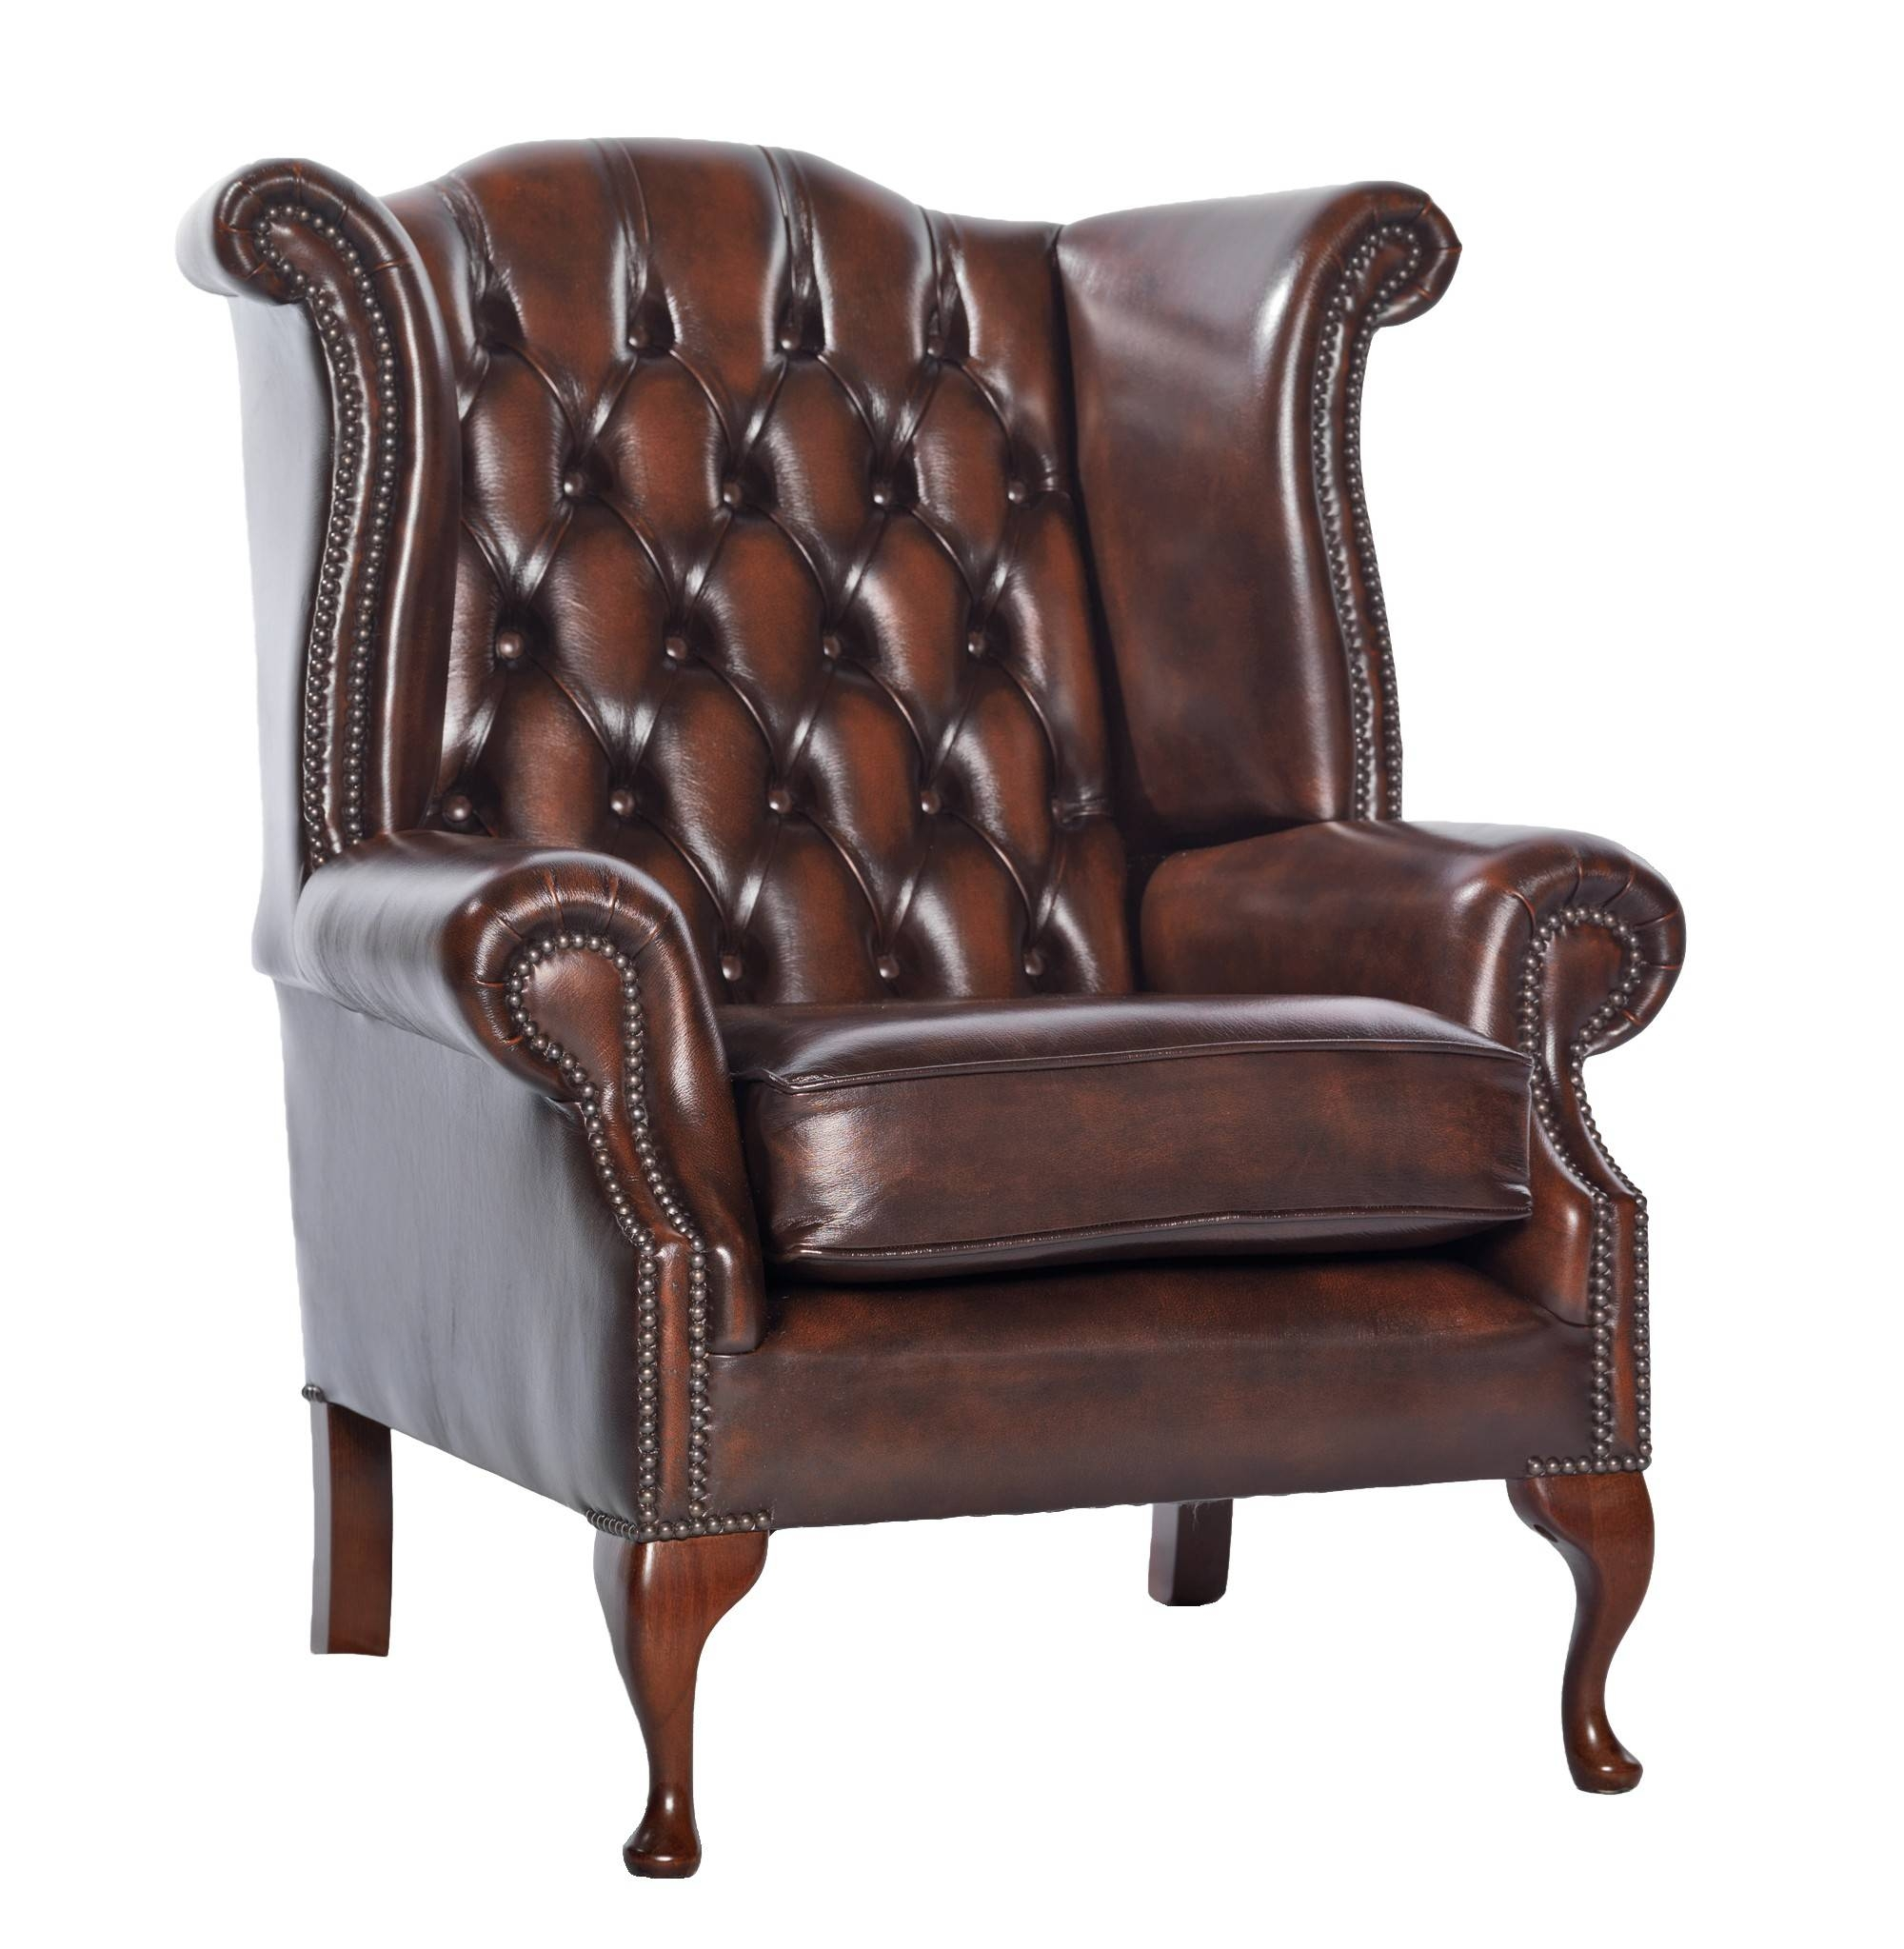 Lovely Leather Sofa Chair 94 On Contemporary Sofa Inspiration With For Chair Sofas (View 11 of 30)